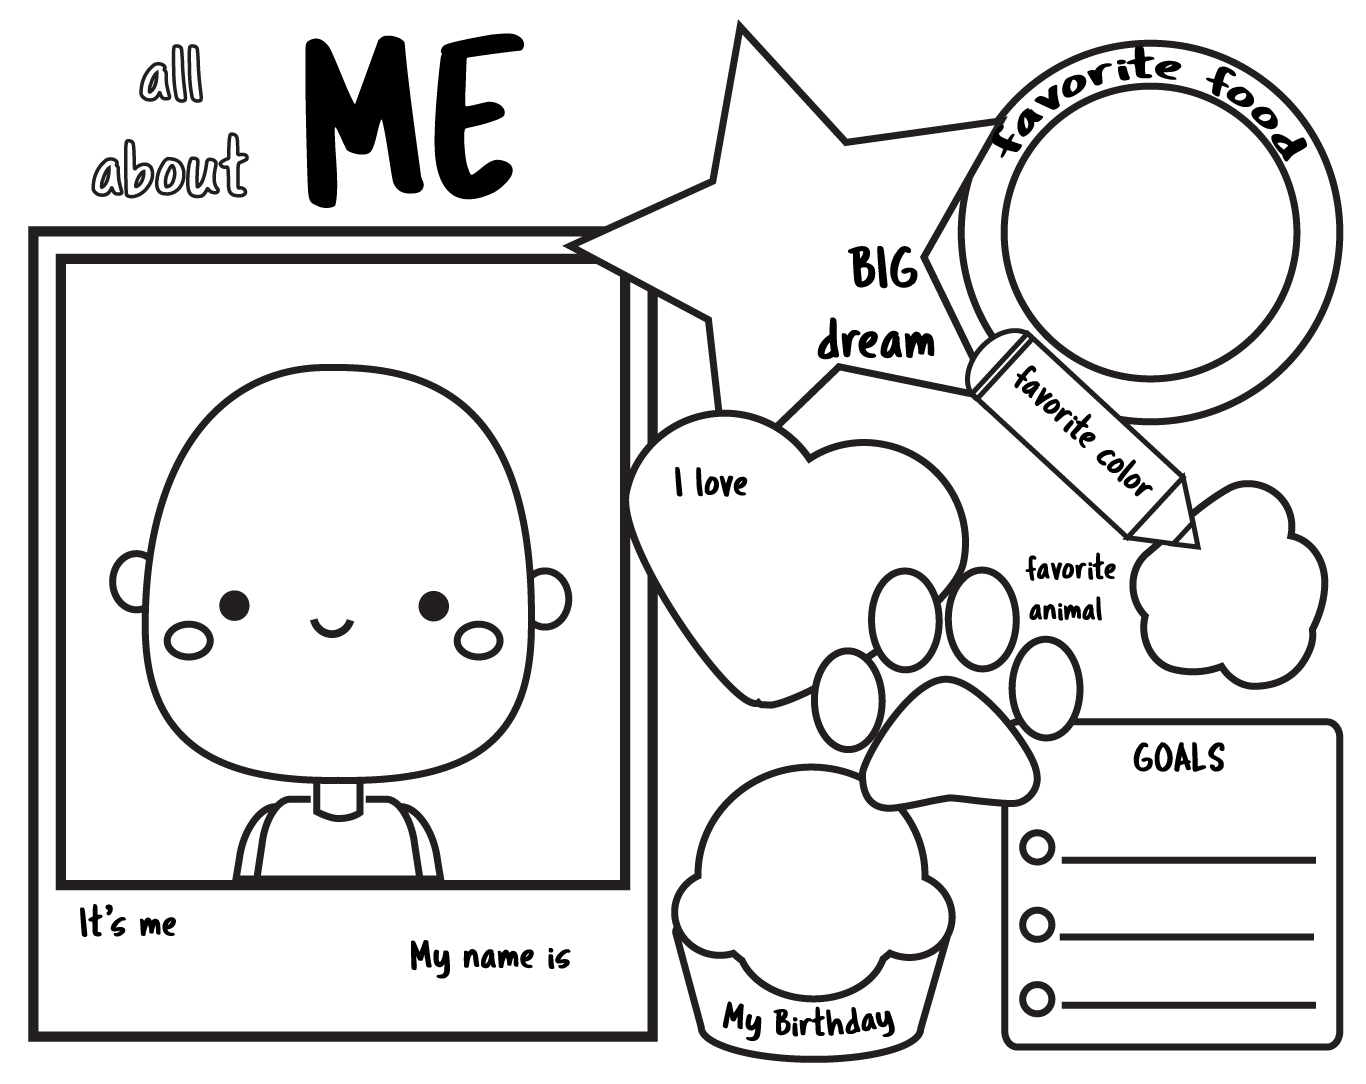 About-Me-Worksheet-1366-0819